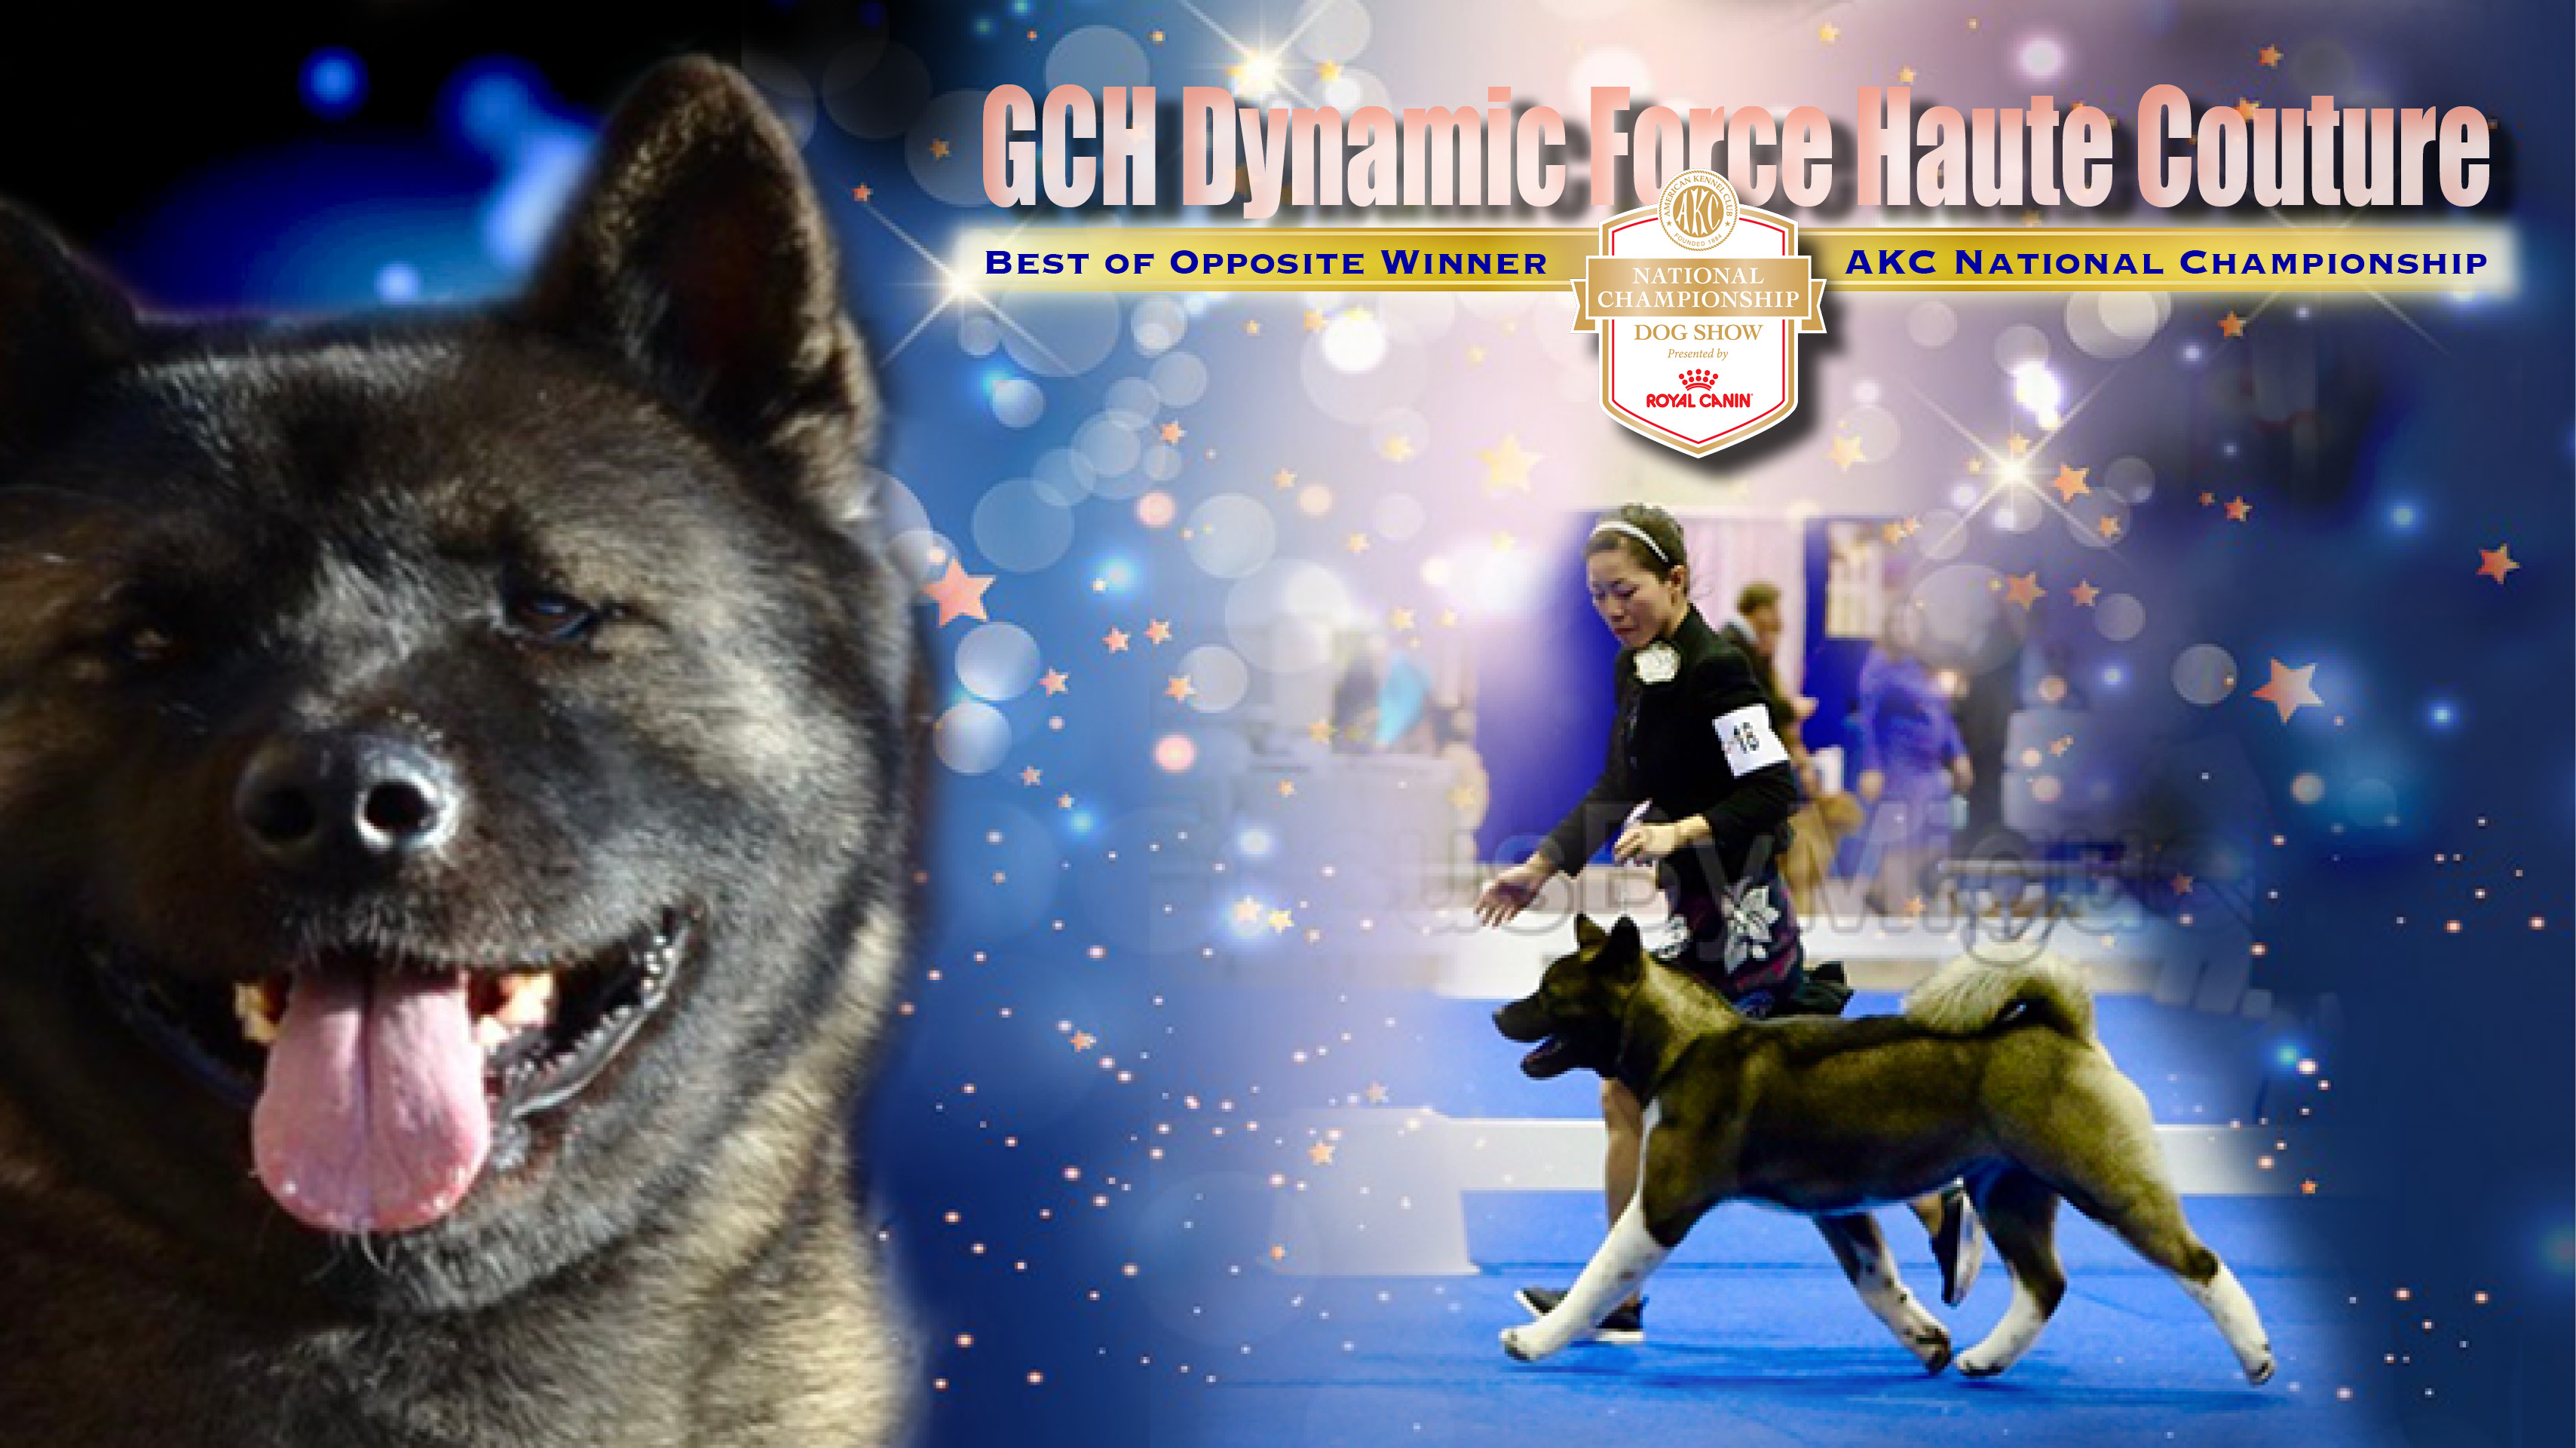 Couture GCH Announcement